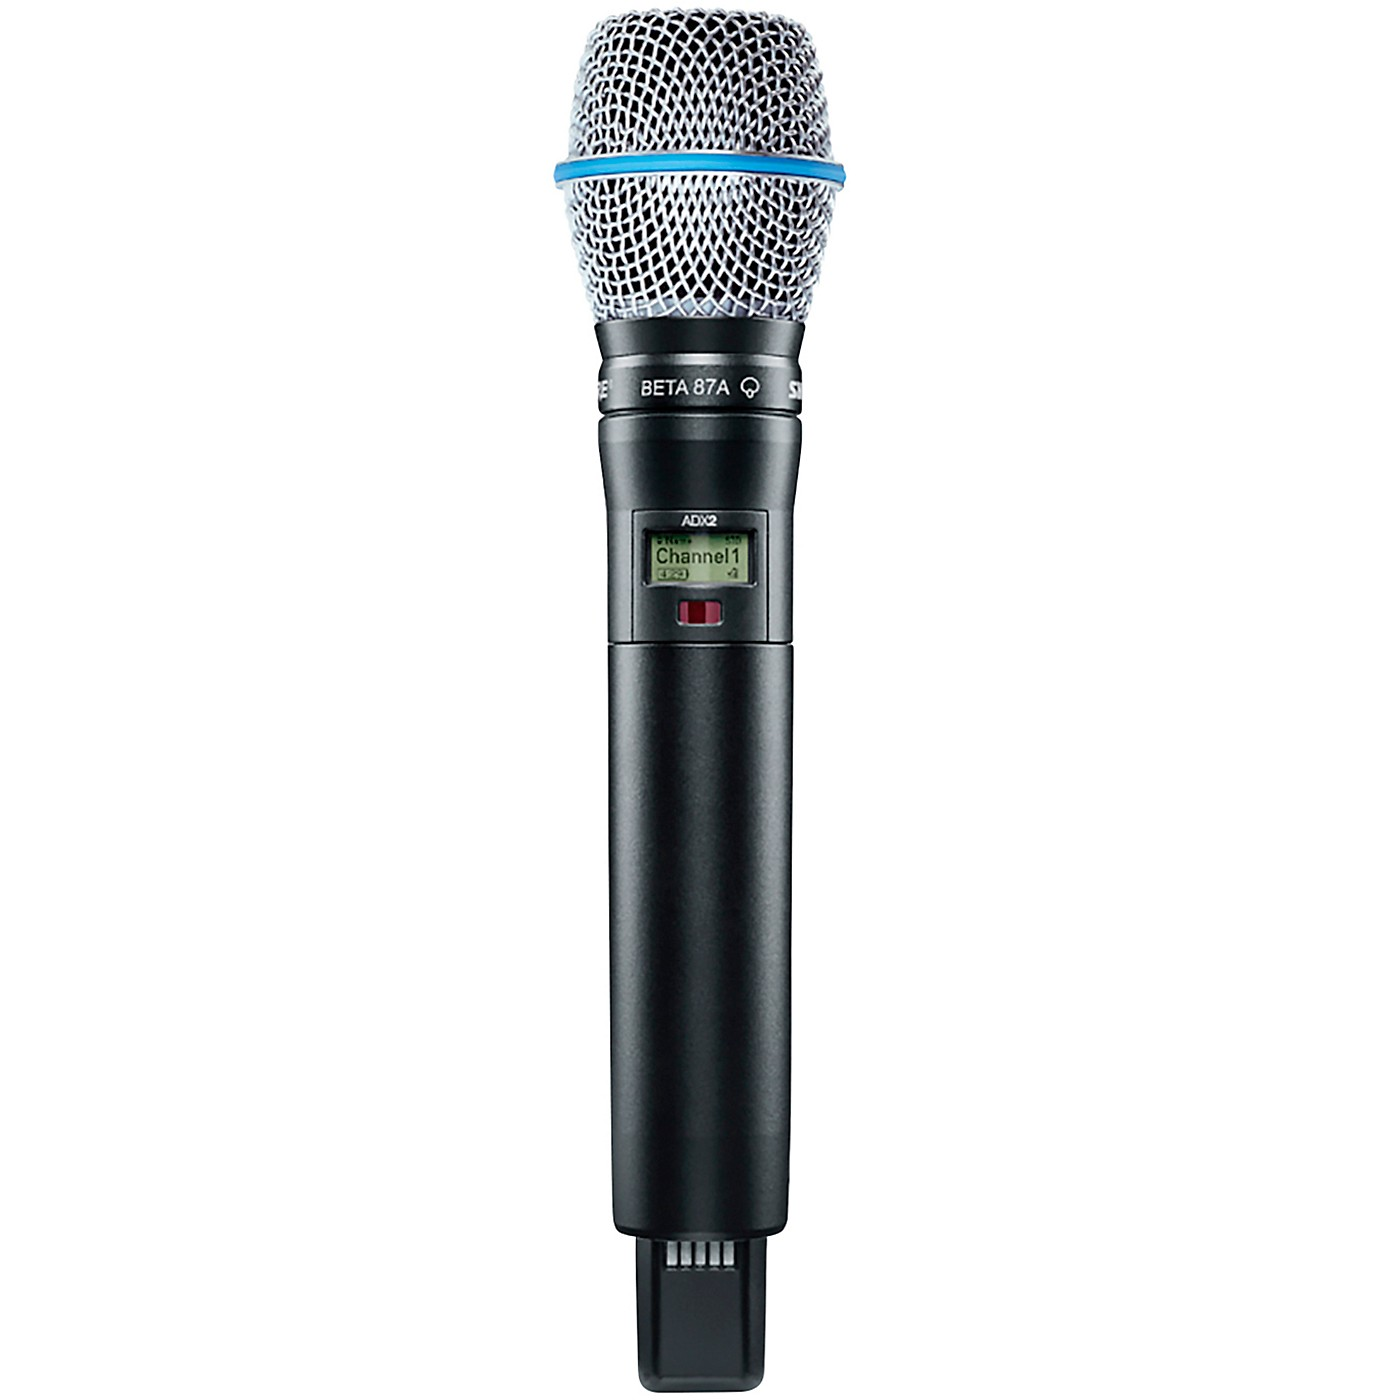 Shure Axient Digital ADX2/B87A Wireless Handheld Microphone Transmitter With BETA 87A Capsule thumbnail